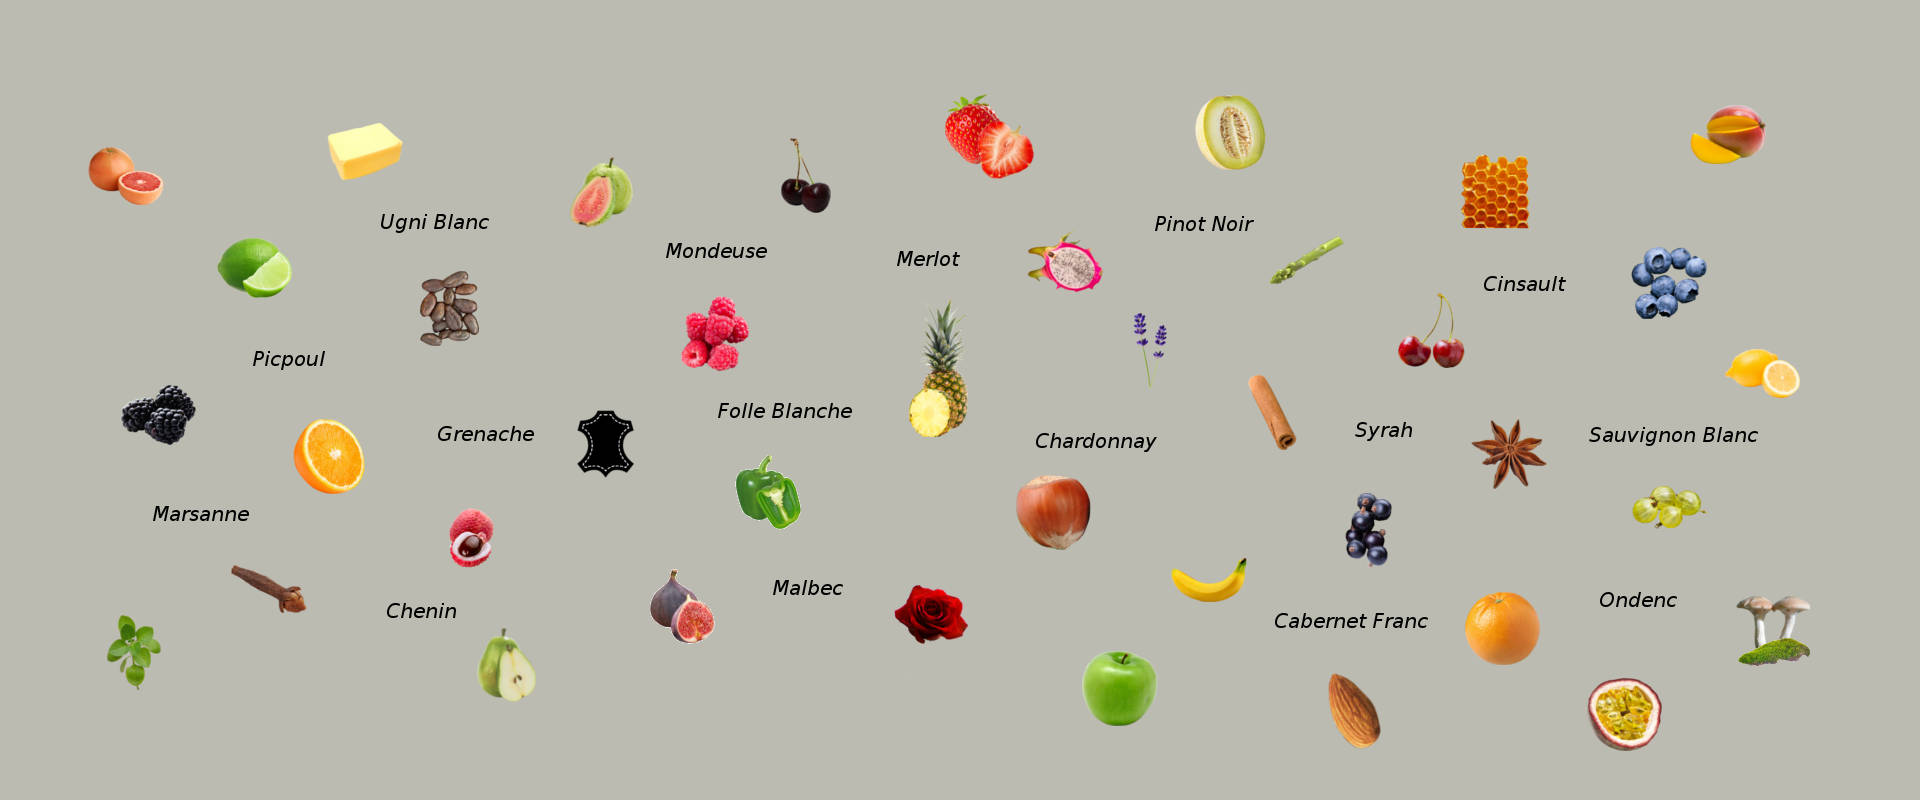 Wine Aroma maps wine grapes and aromas